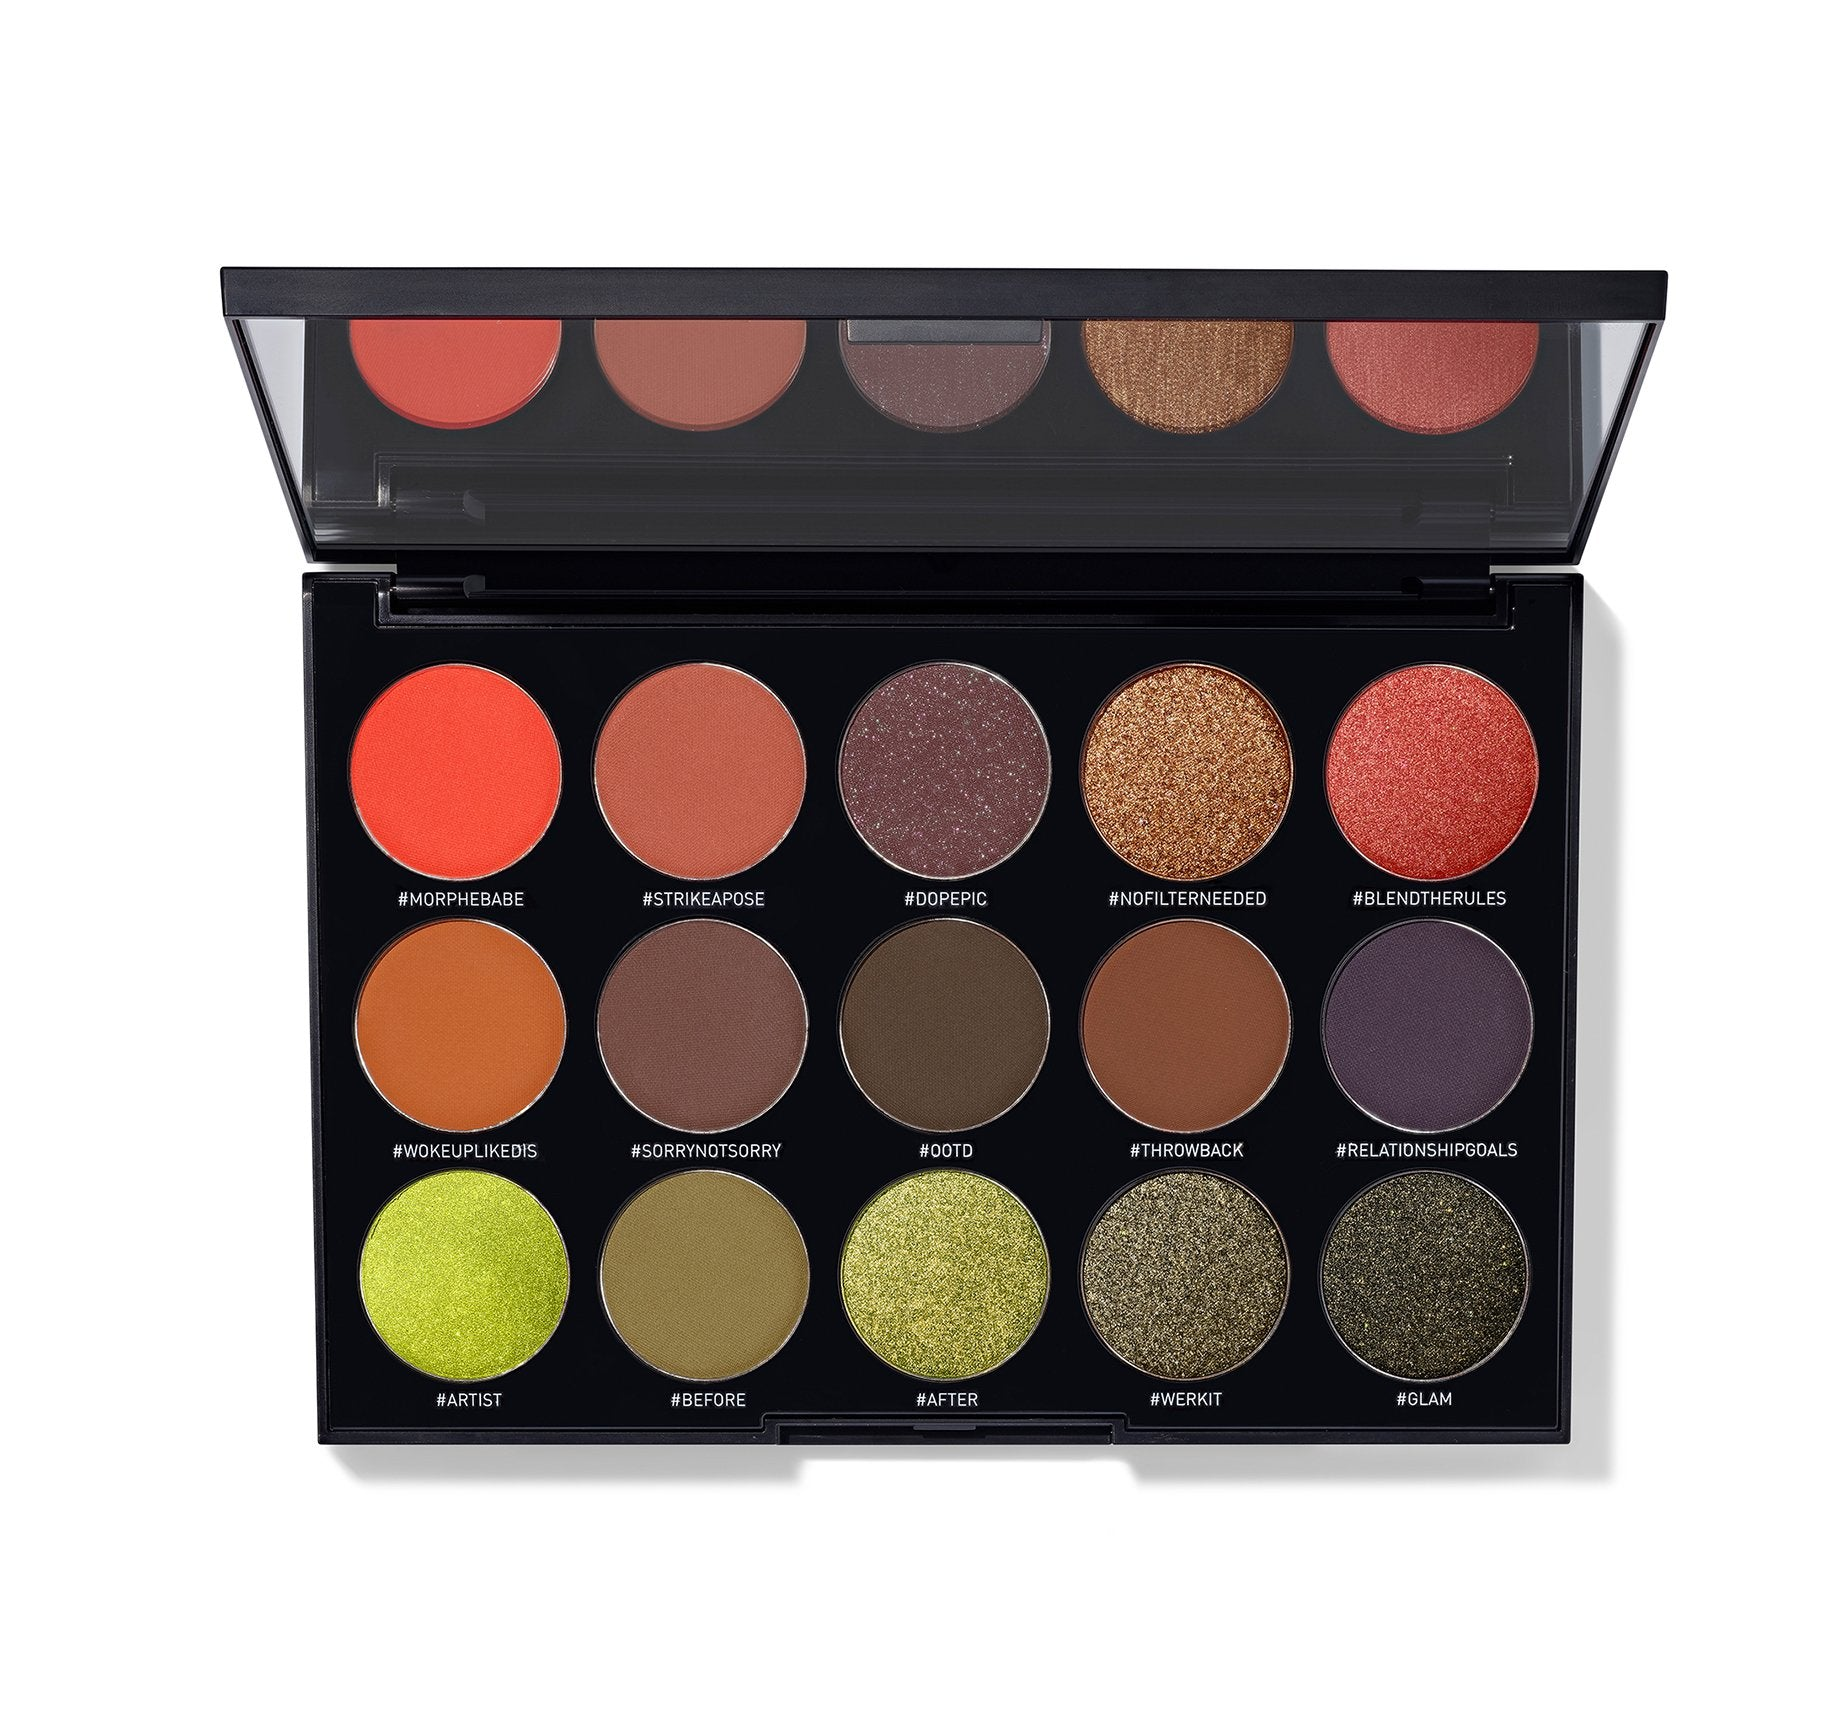 15T YOUR TRUE SELFIE ARTISTRY PALETTE, view larger image